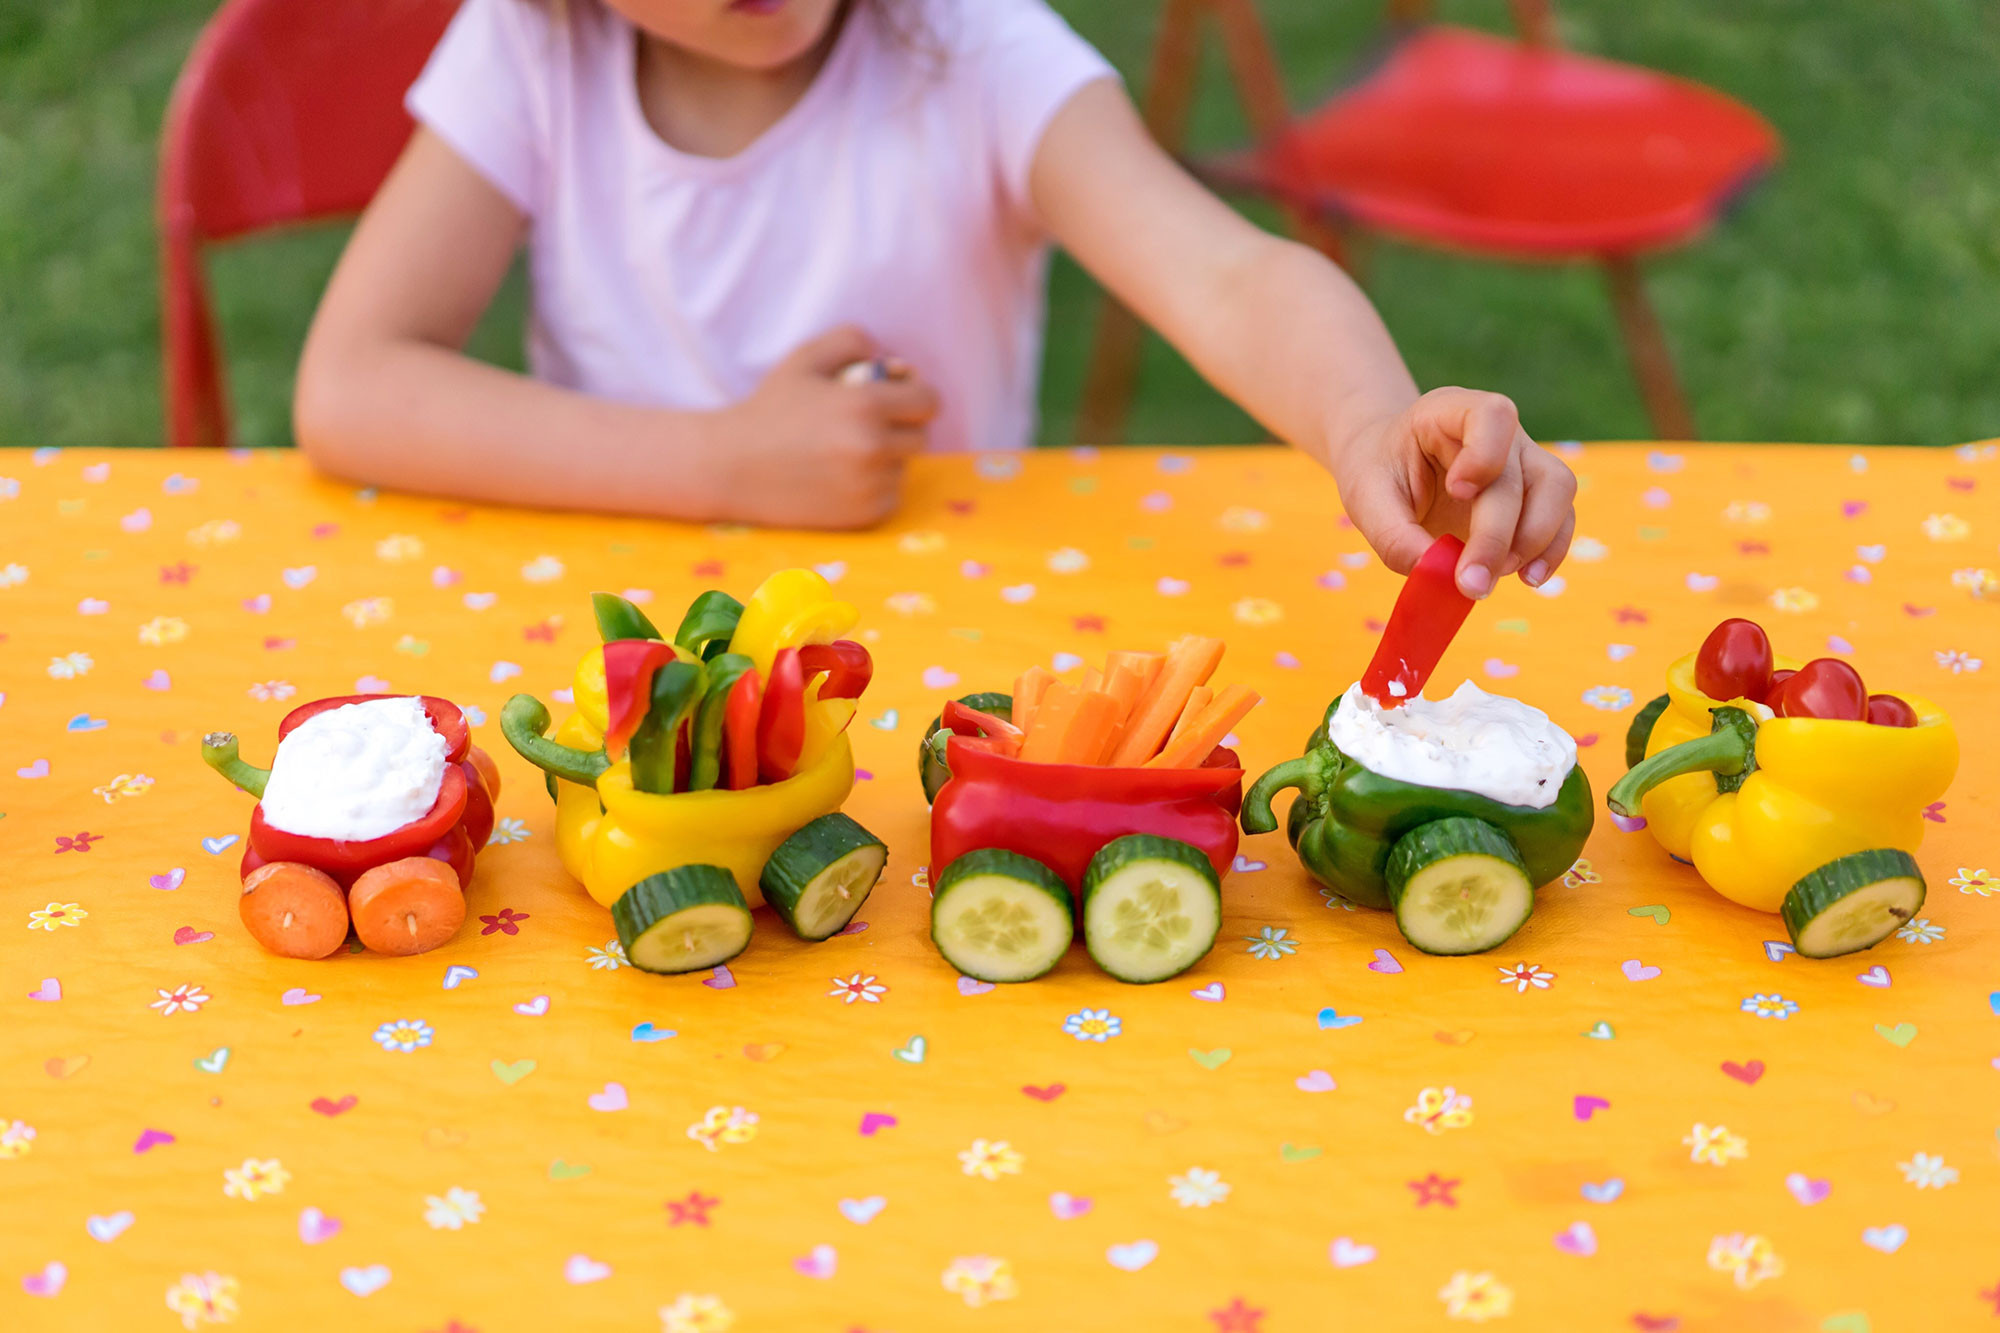 Party Food Ideas For Teenagers  Healthy Party Food Ideas for Kids That Curb the Sugar Rush